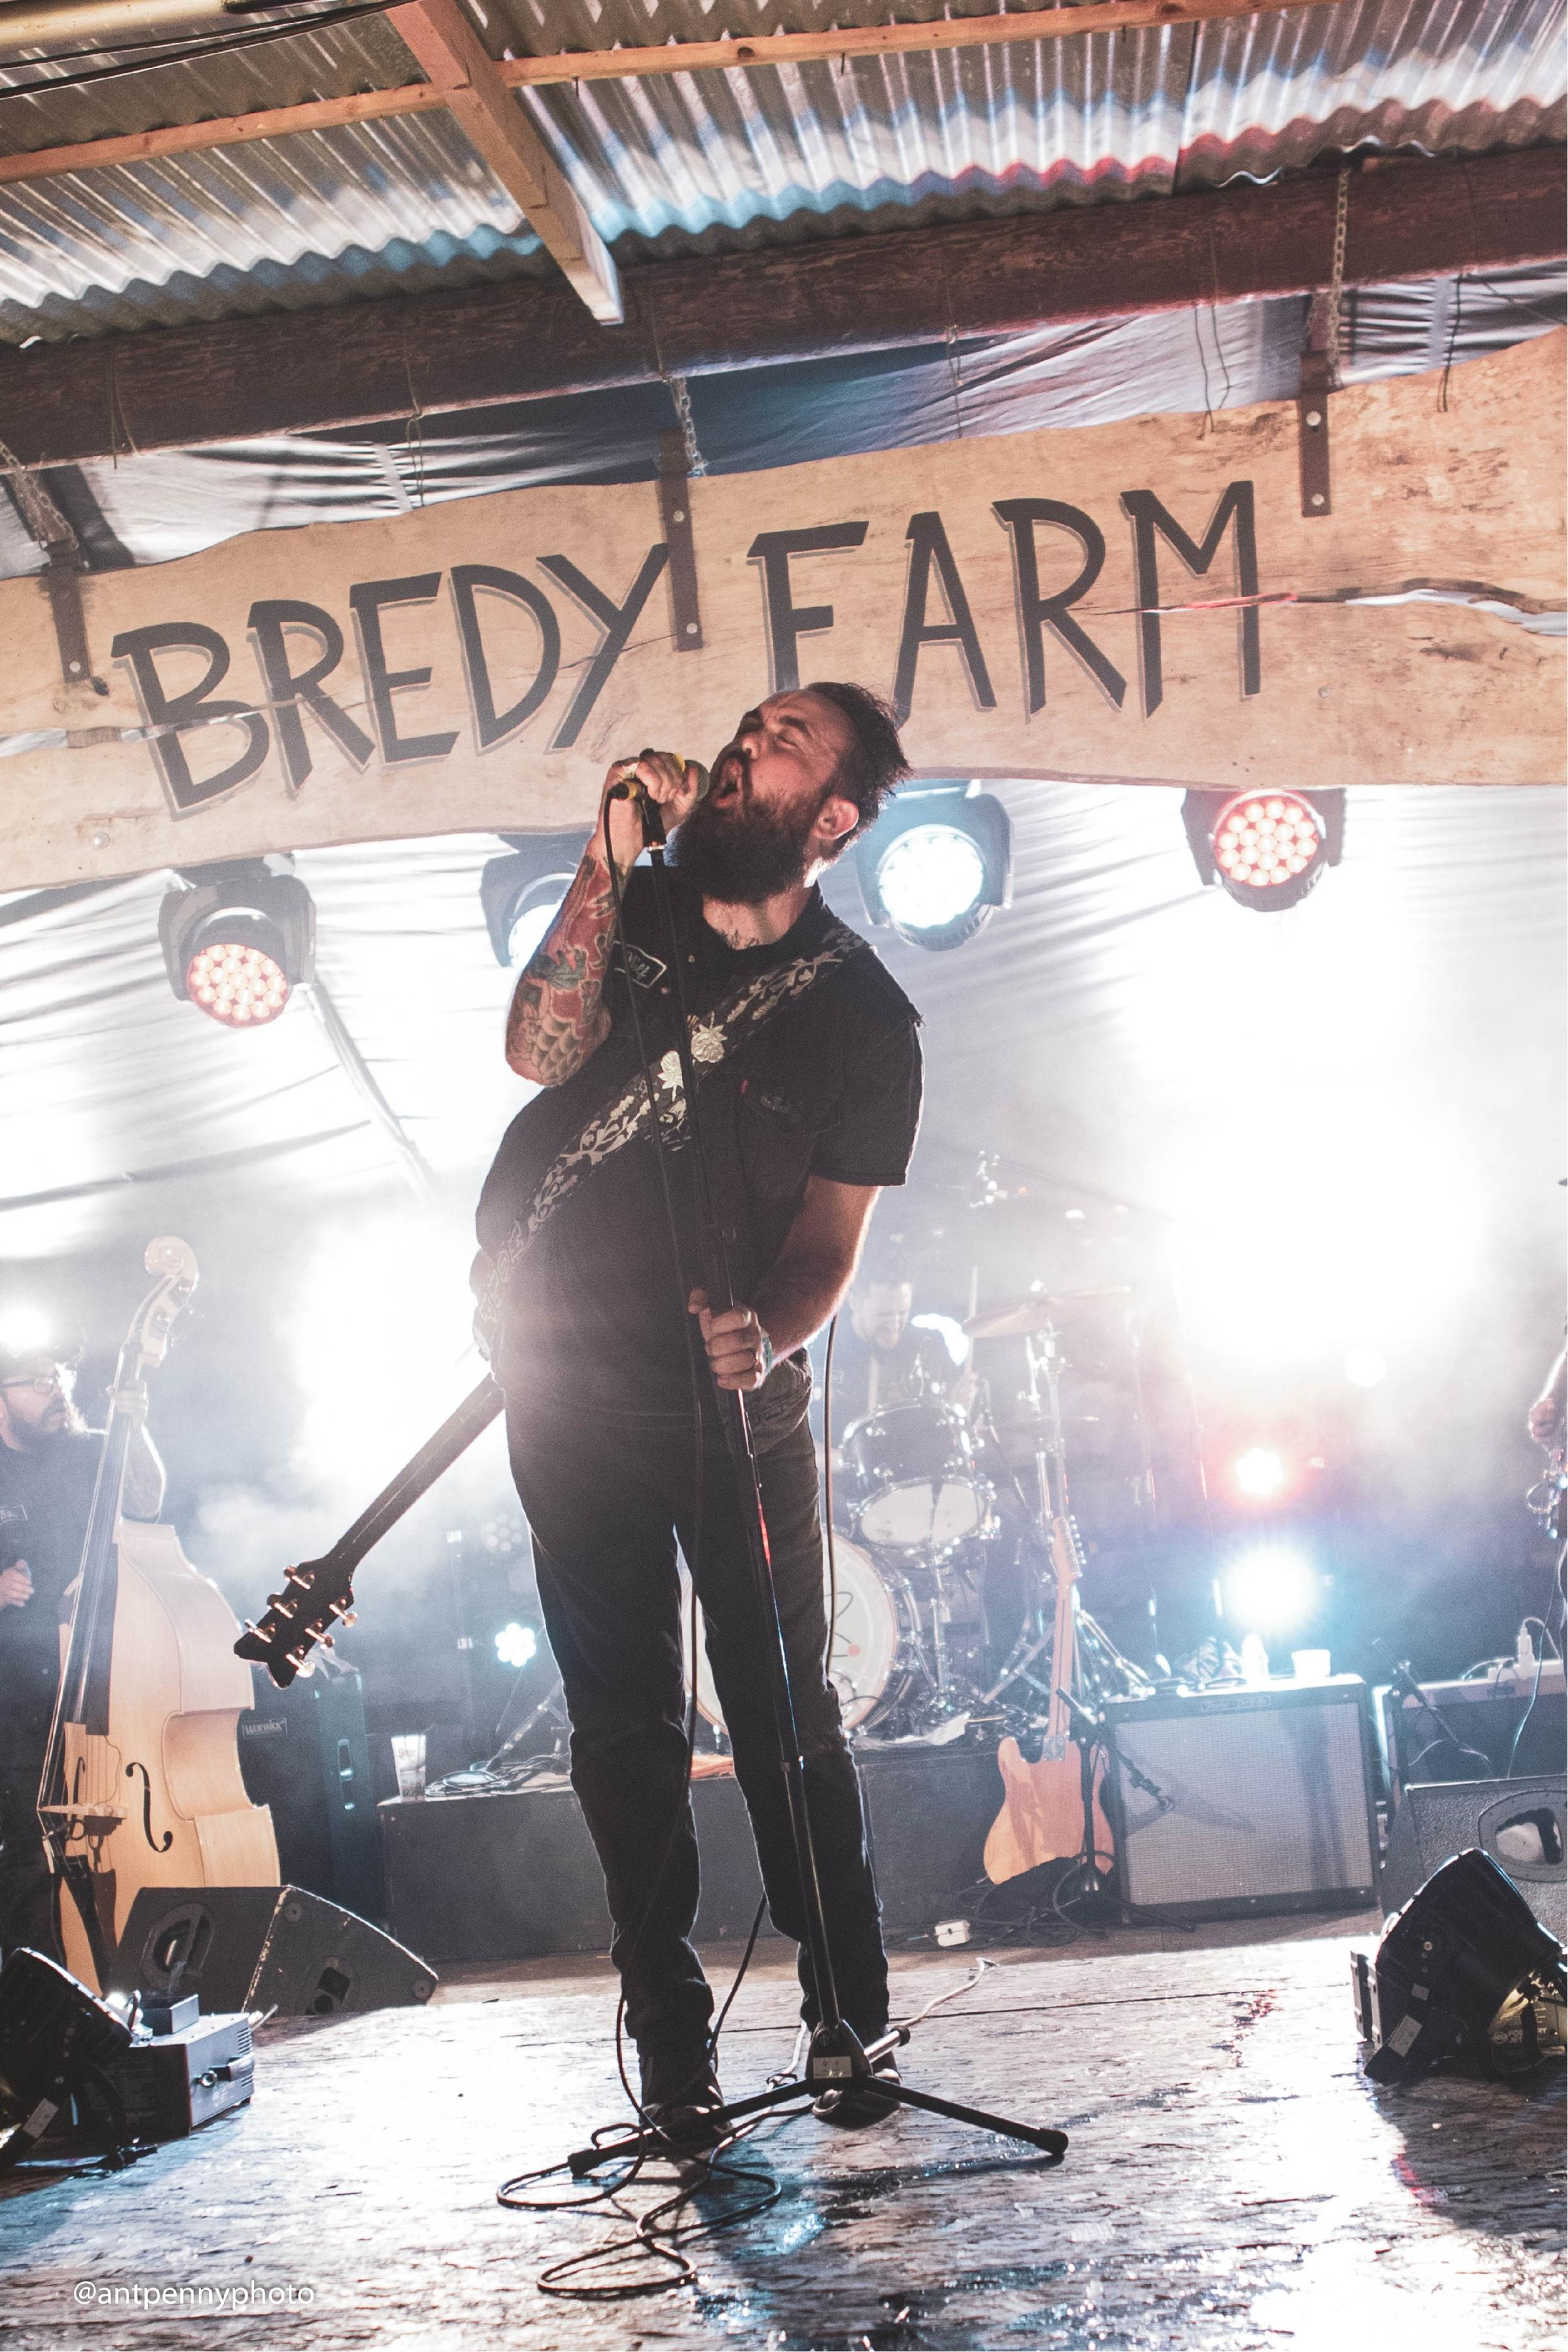 Don't miss this special music festival on a west Dorset farm